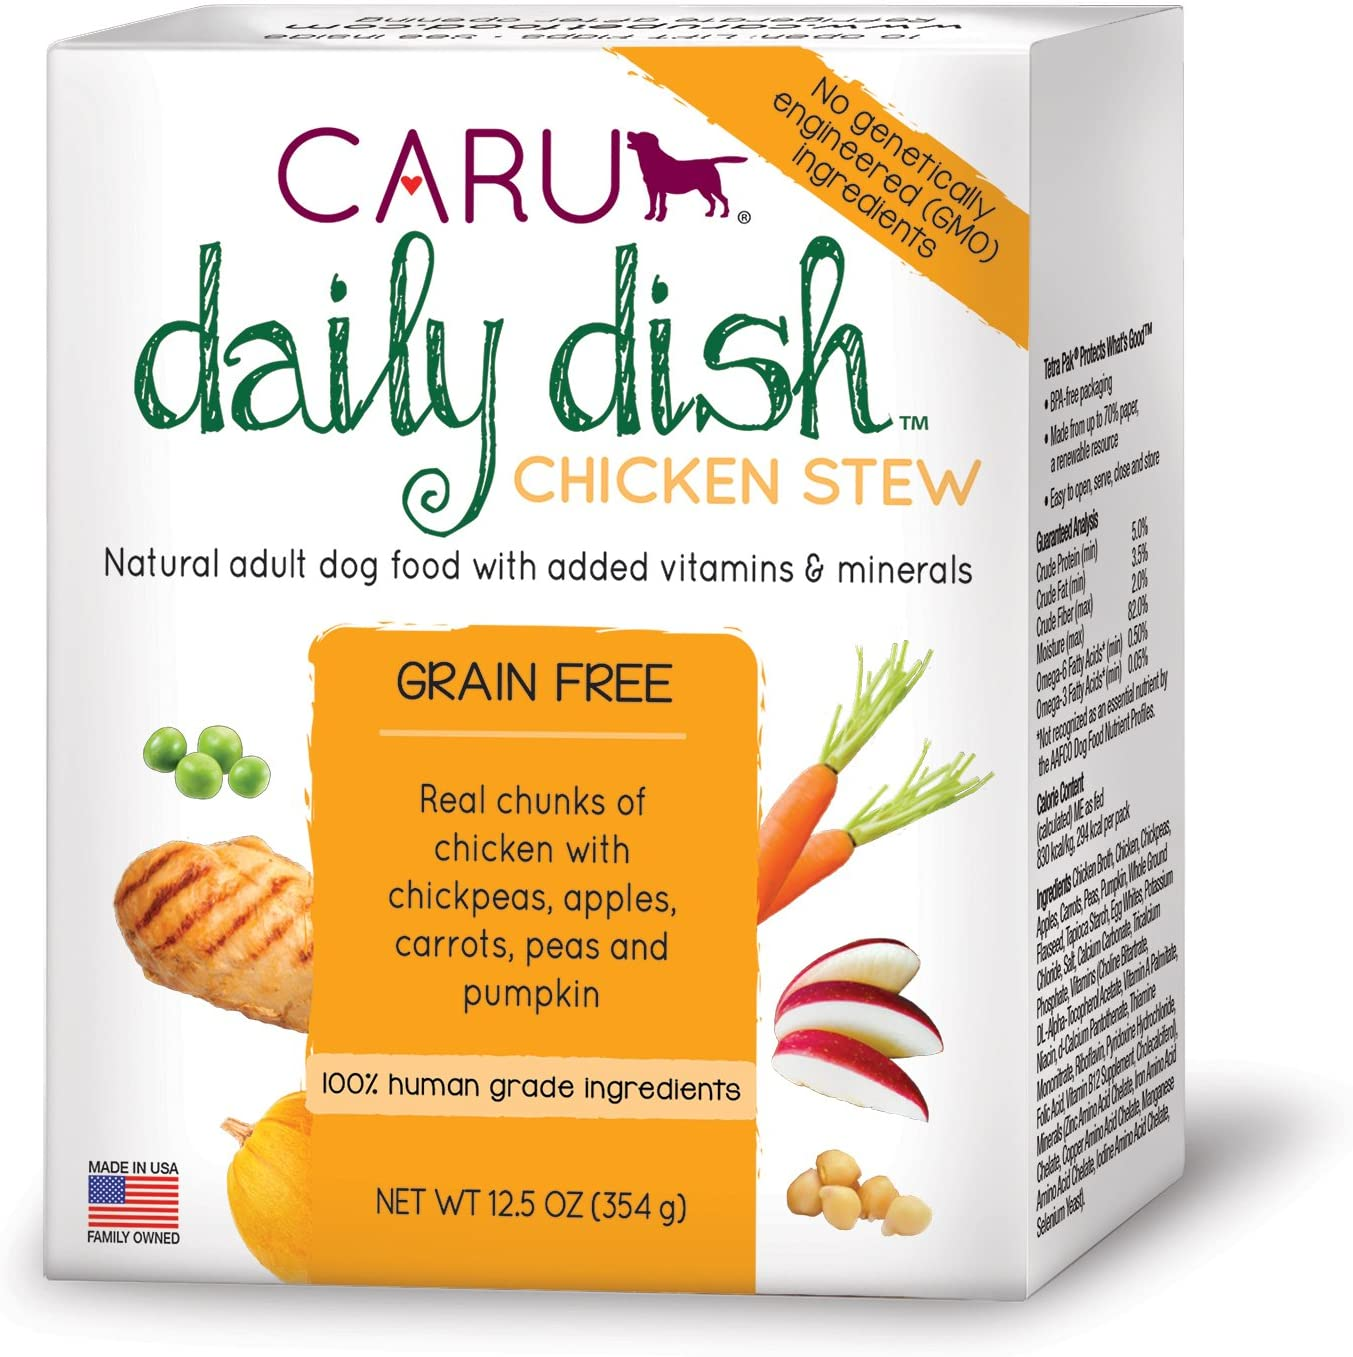 Caru - Daily Dish Stew, Natural Adult Wet Dog Food with Real Chunks of Chicken, with Added Vitamins & Minerals, Non-GMO Ingredients (12.5 oz) - 12 Pack